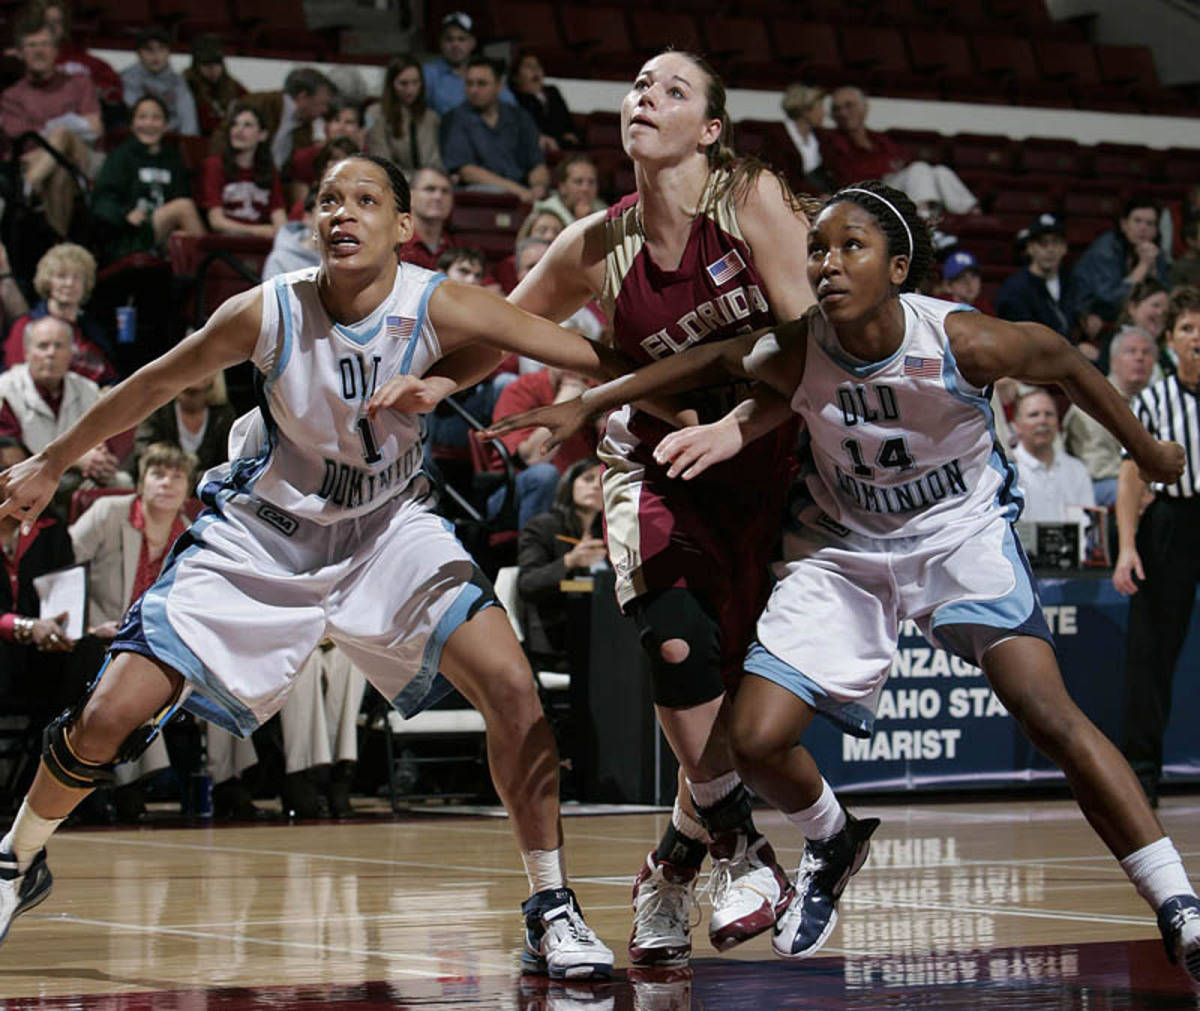 Nikki Anthony had four big rebounds in the Old Dominion win.